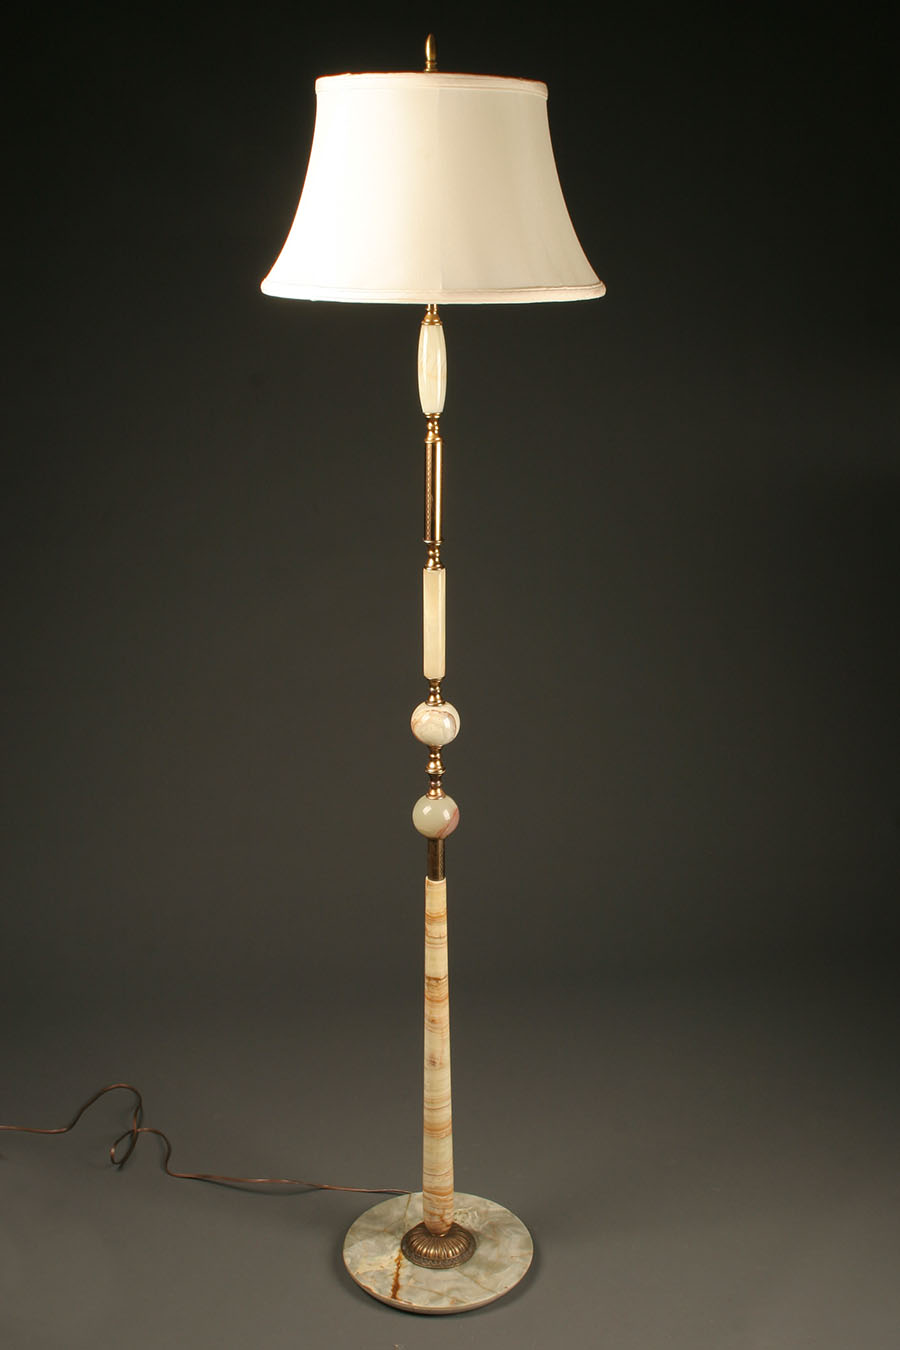 1920 180 S Onyx And Brass Danish Floor Lamp